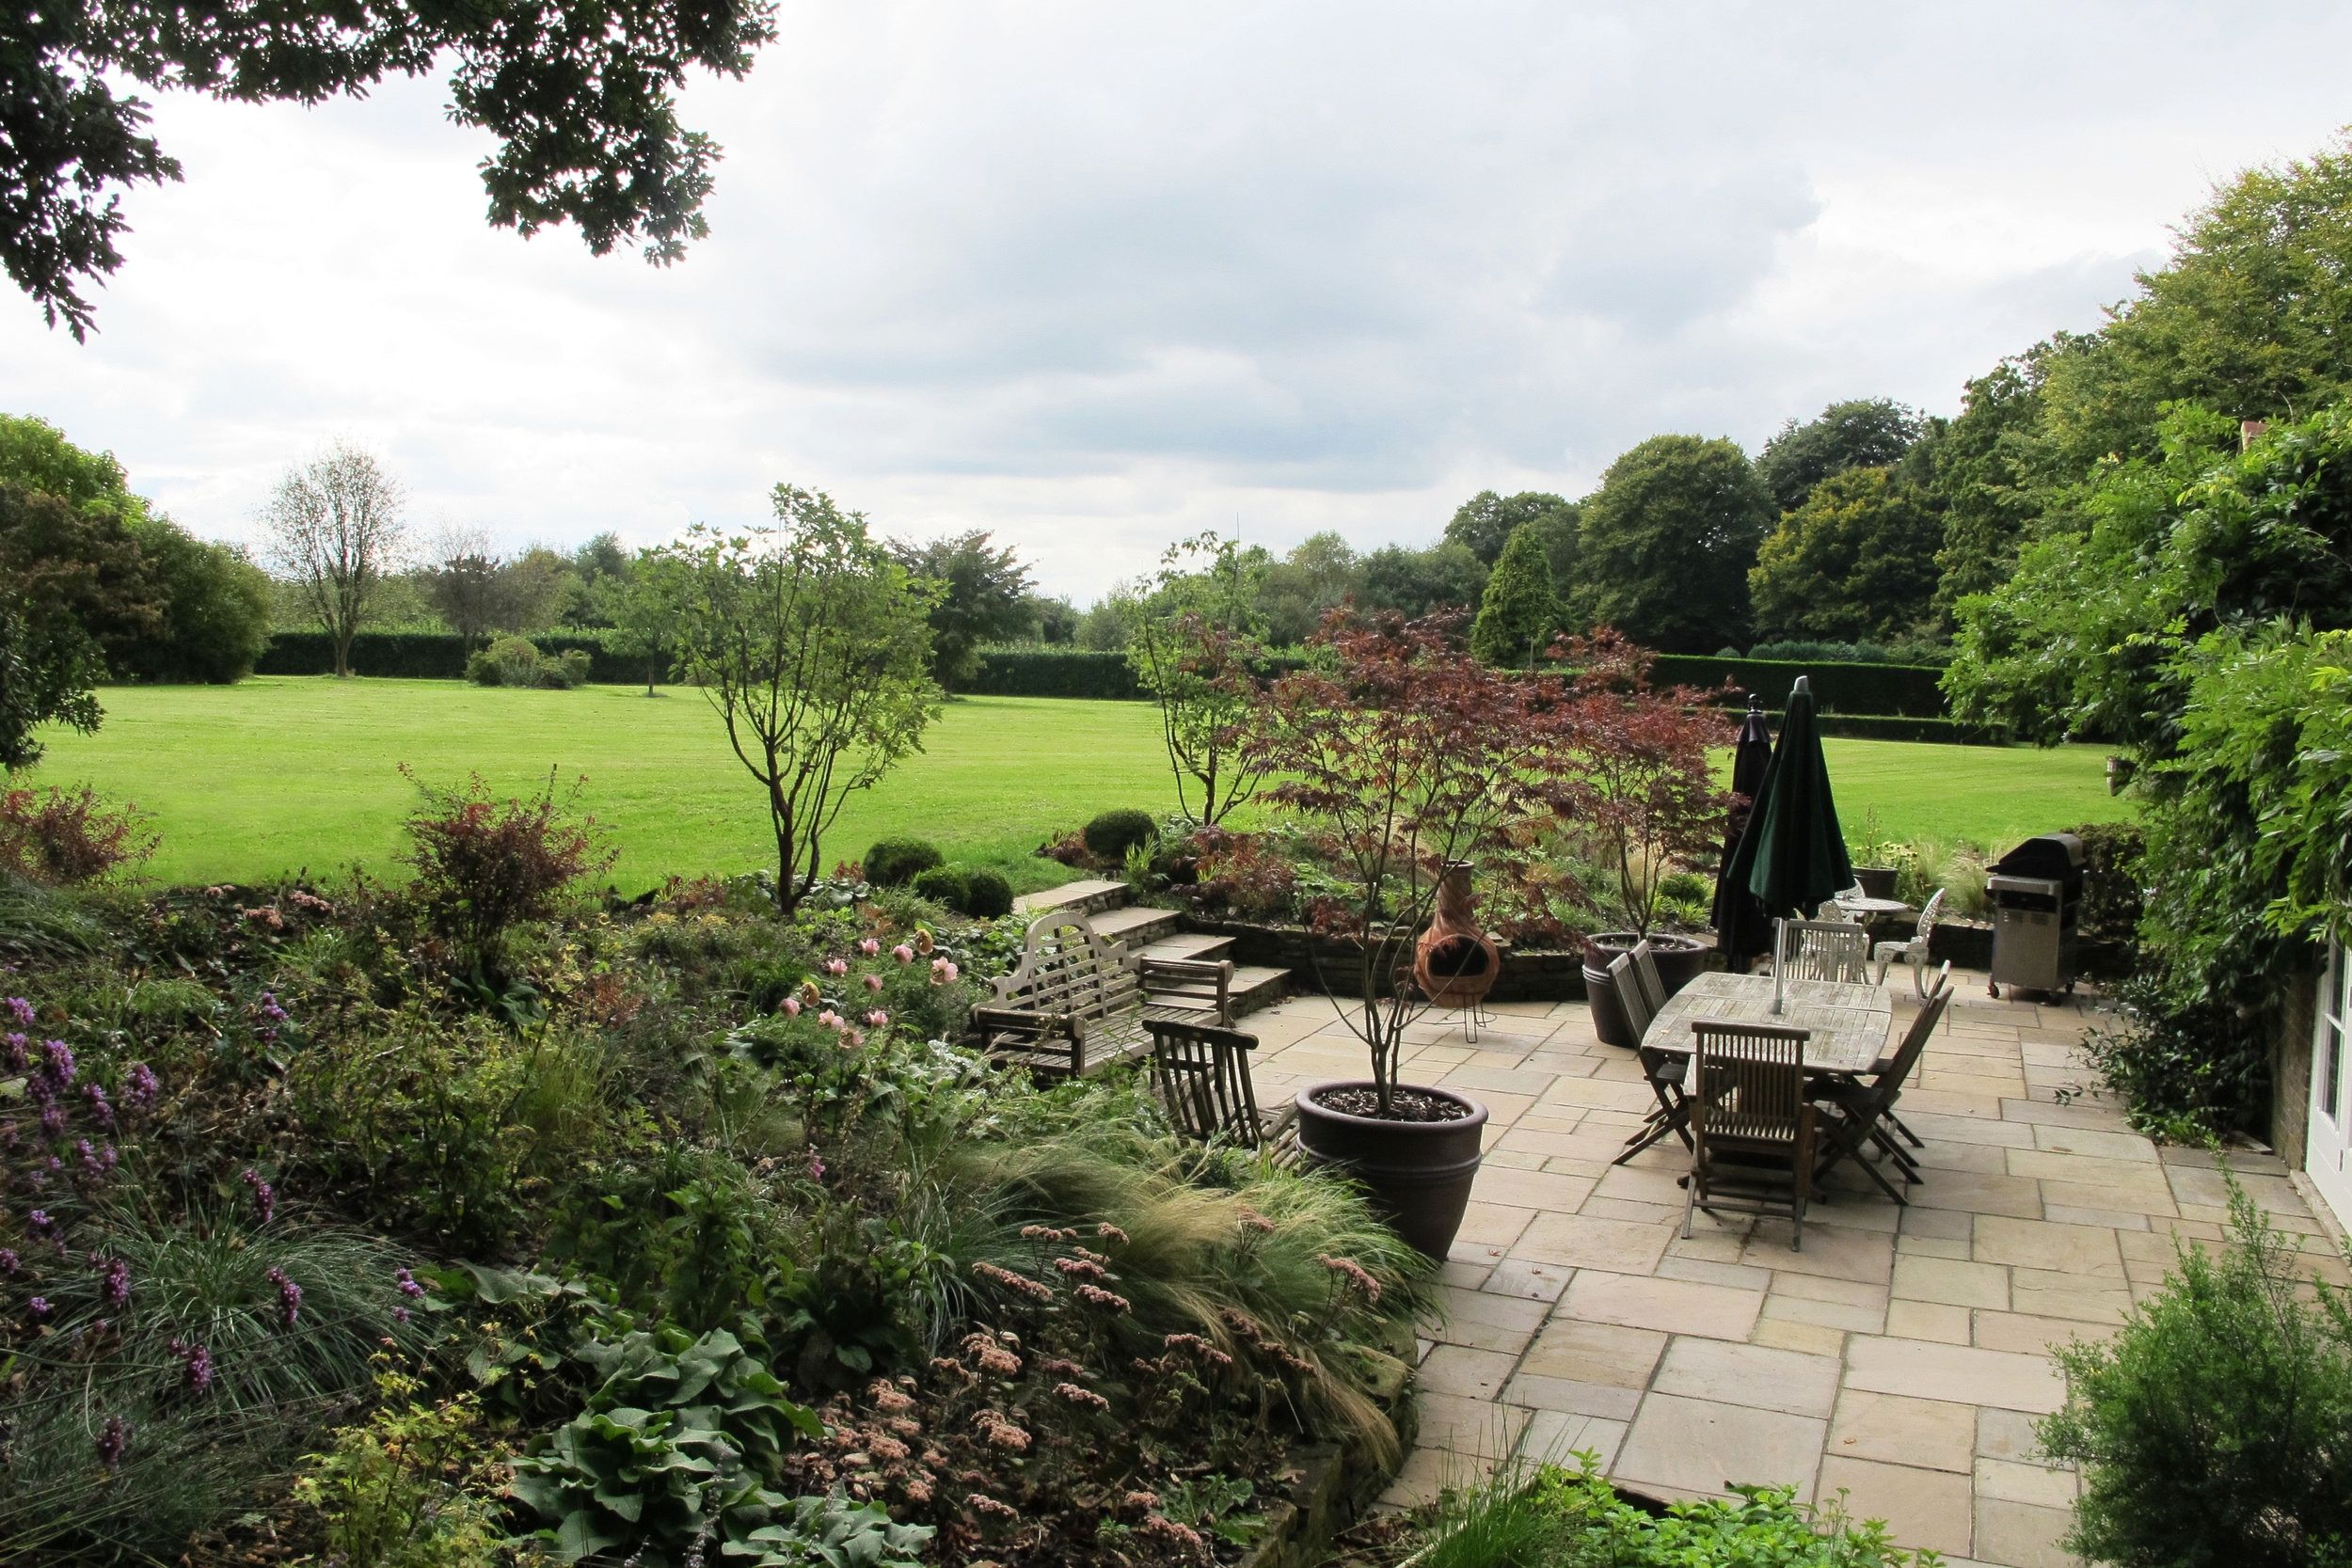 Hampshire (With images) | Garden design, Outdoor decor